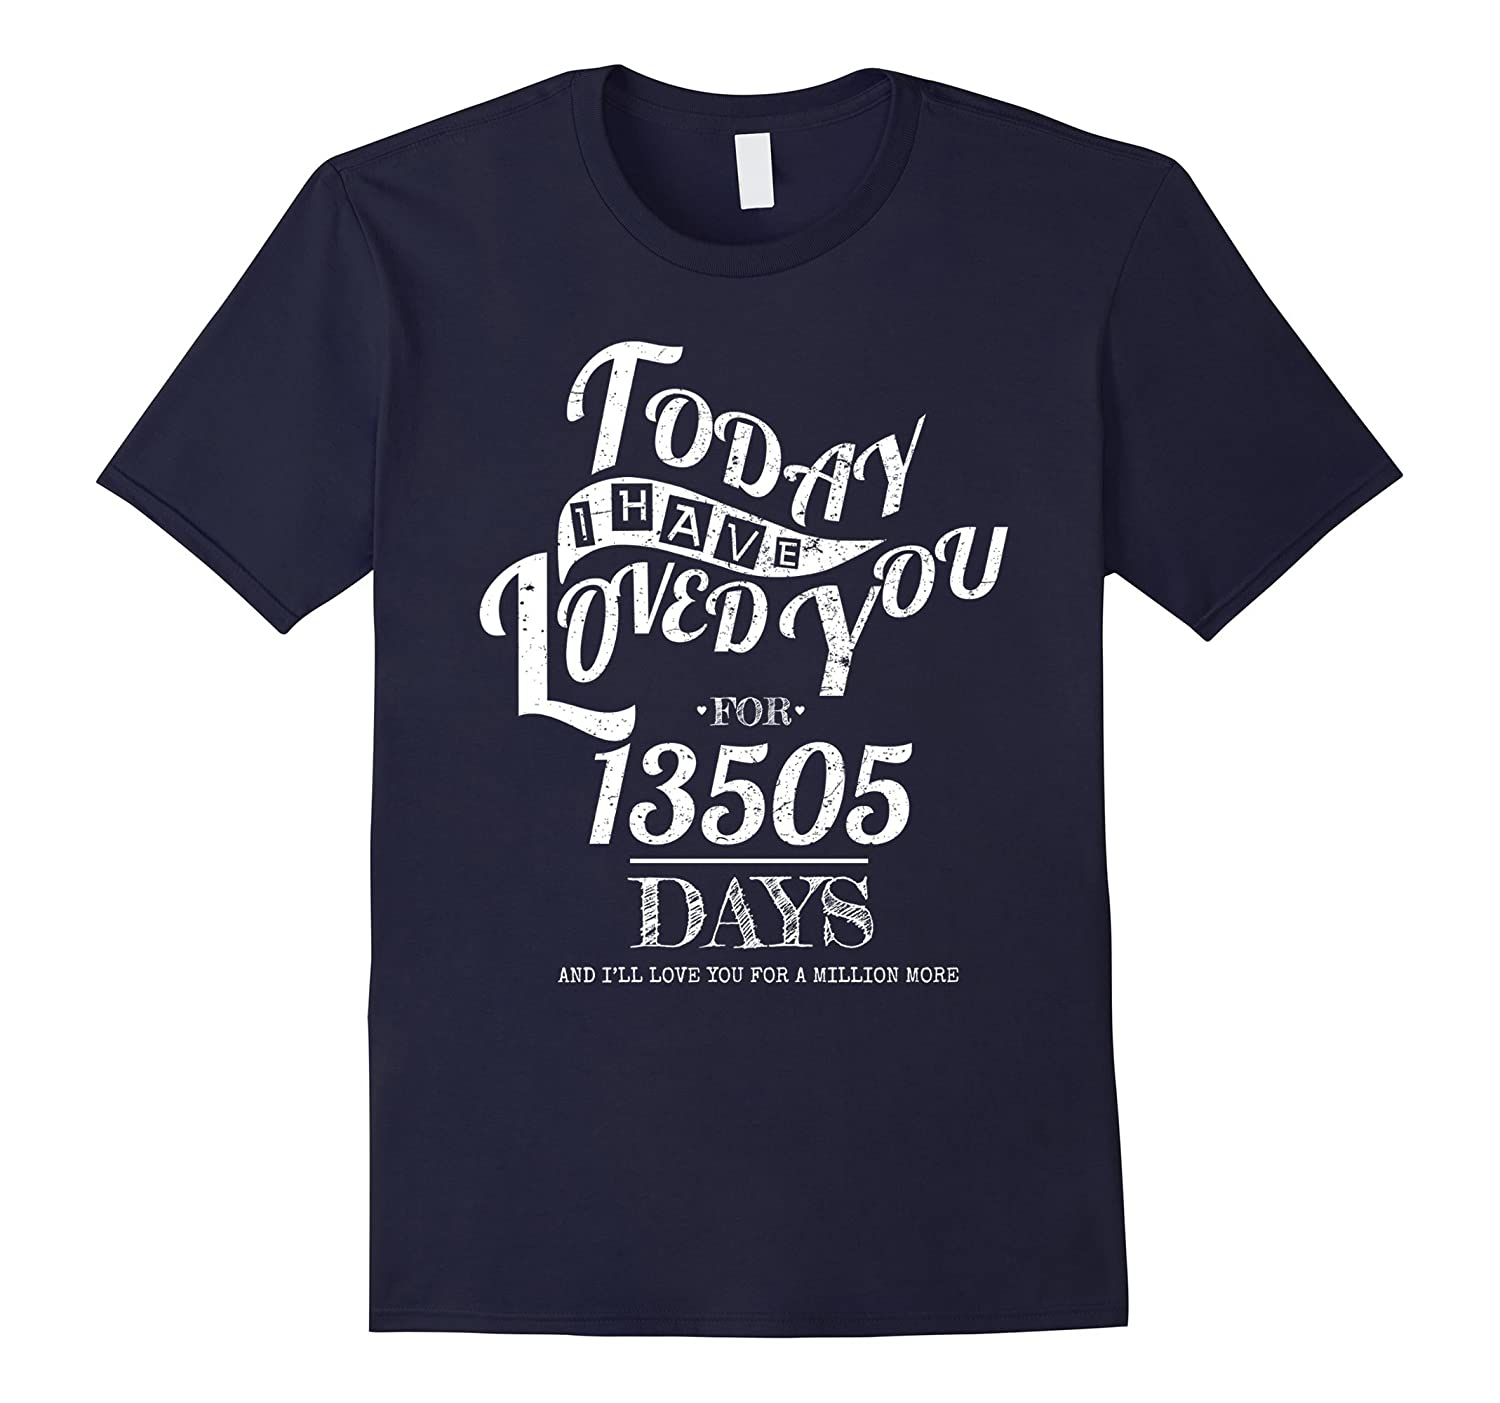 37th Wedding Anniversary T-Shirt Funny For Married In 1980 T-TJ